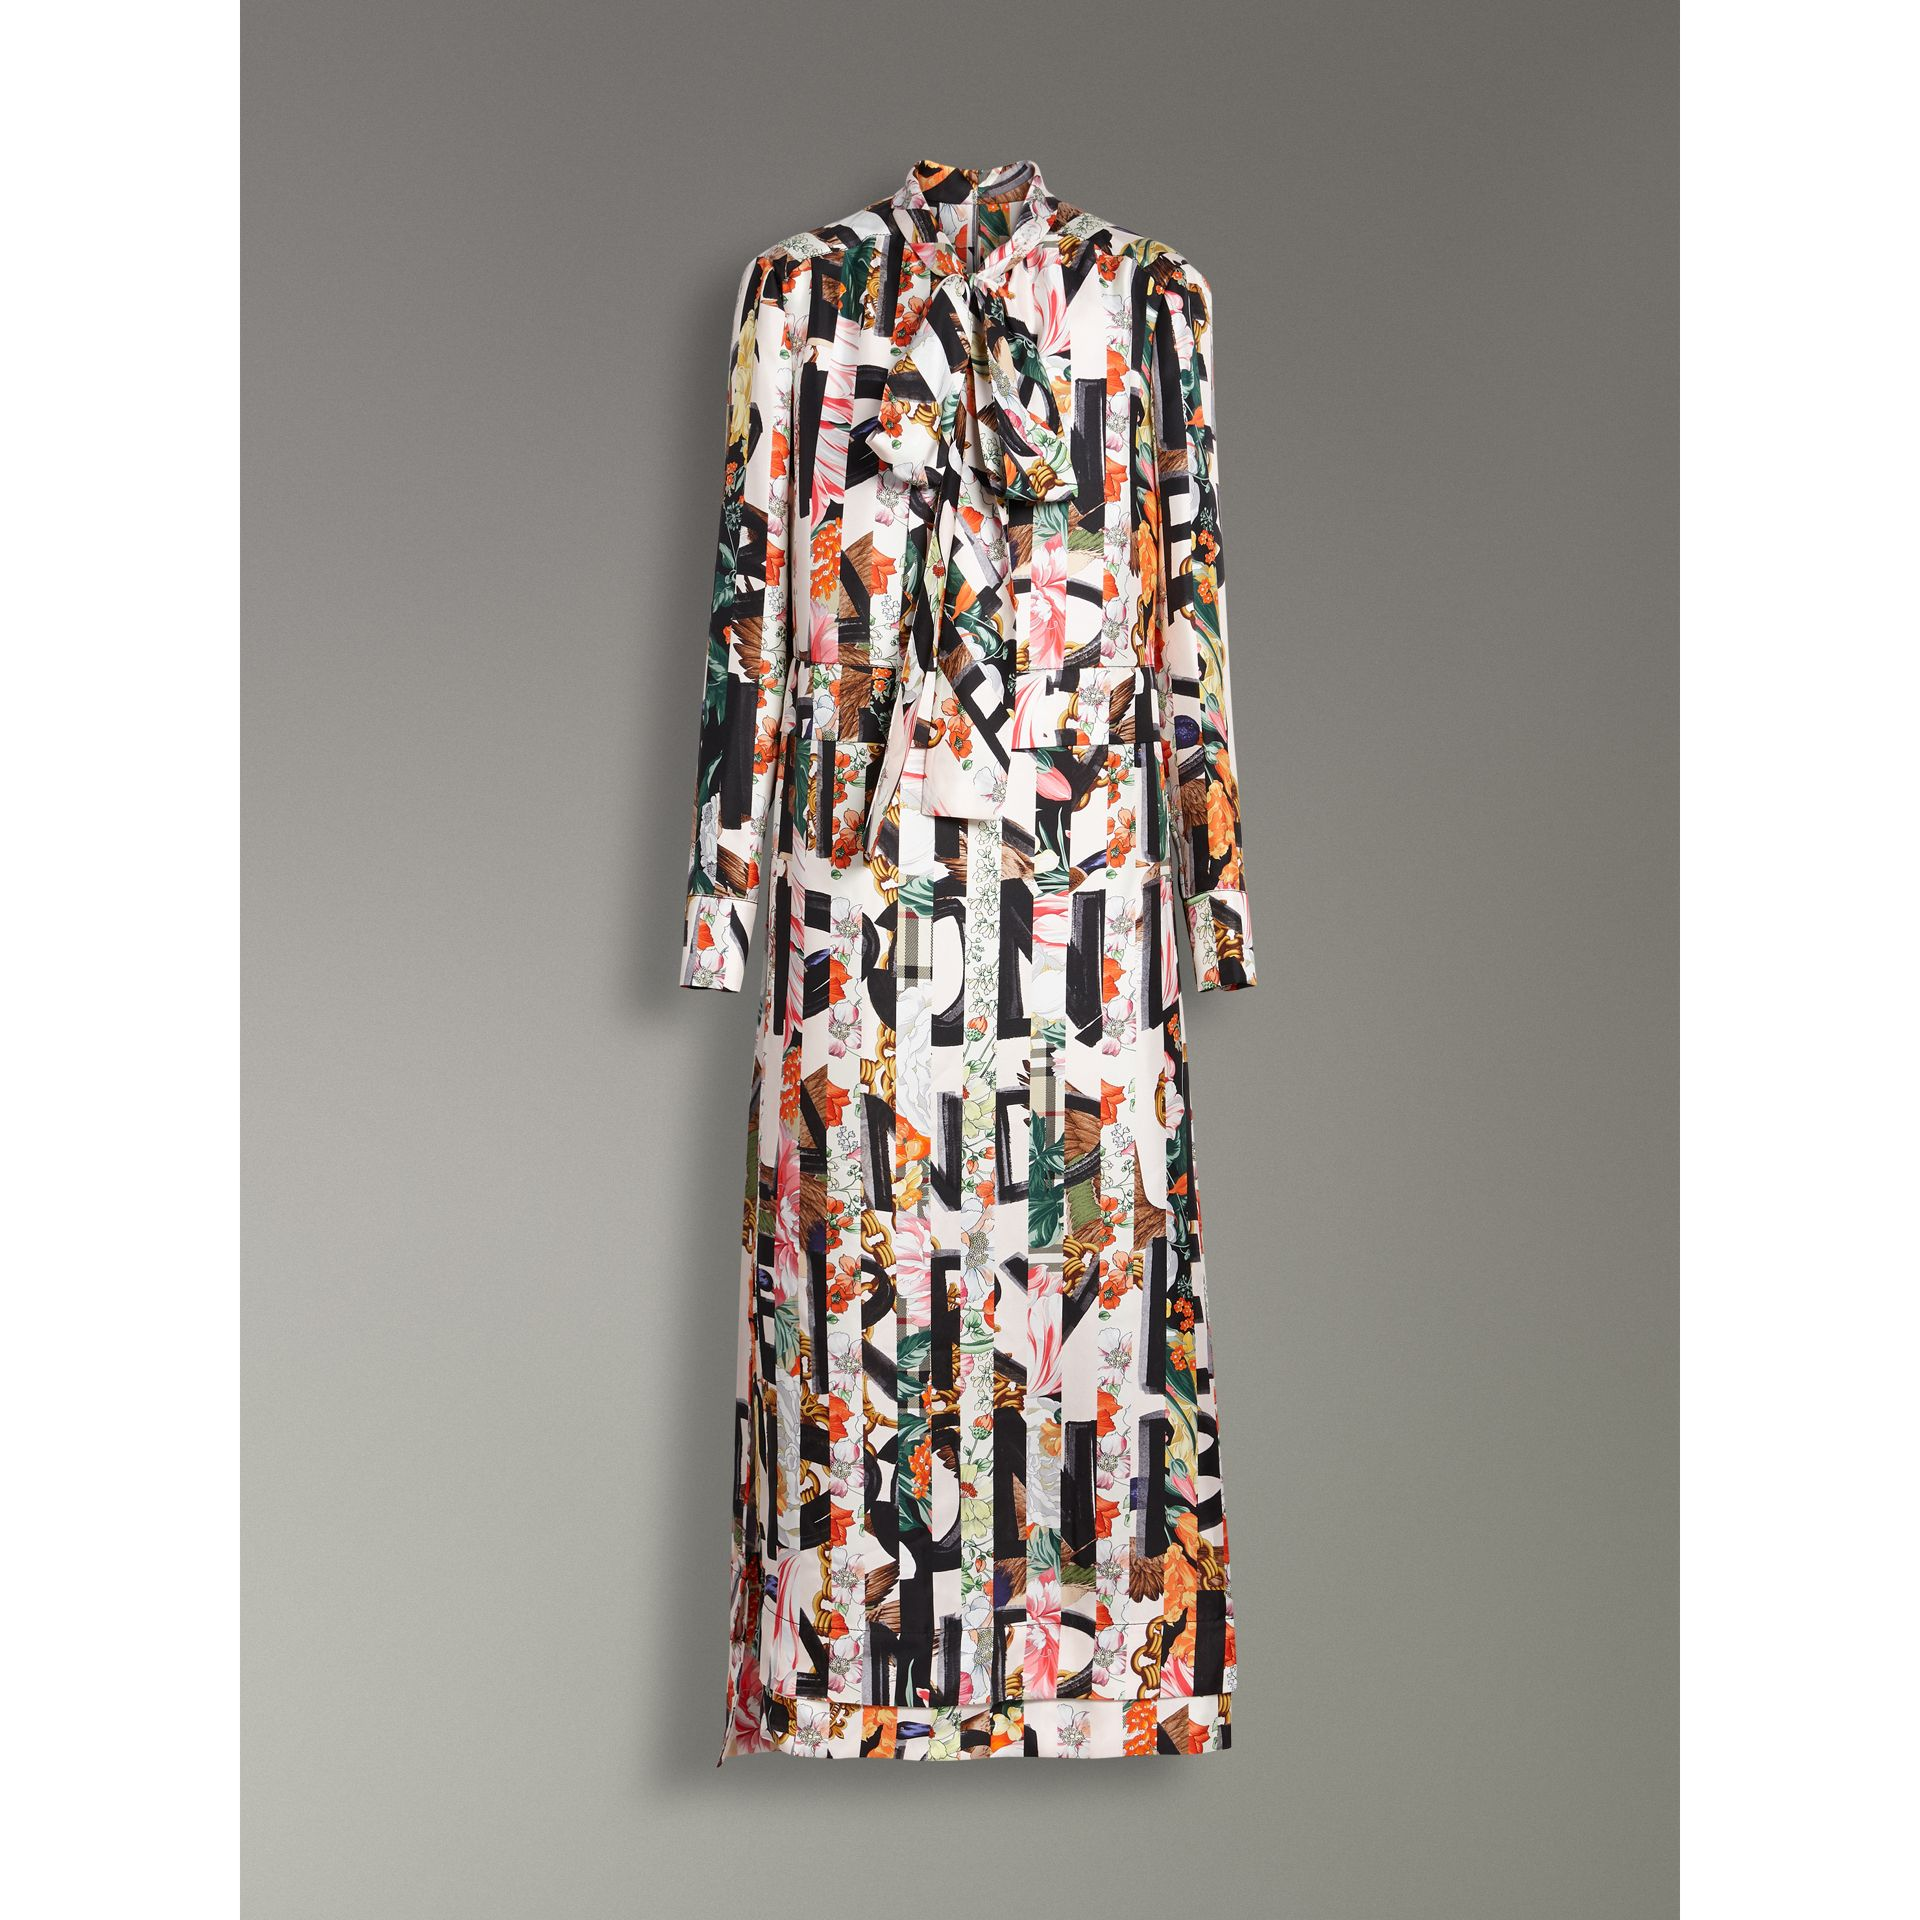 Graffiti Archive Scarf Print Silk Tie-neck Dress in Multicolour - Women | Burberry Hong Kong - gallery image 3